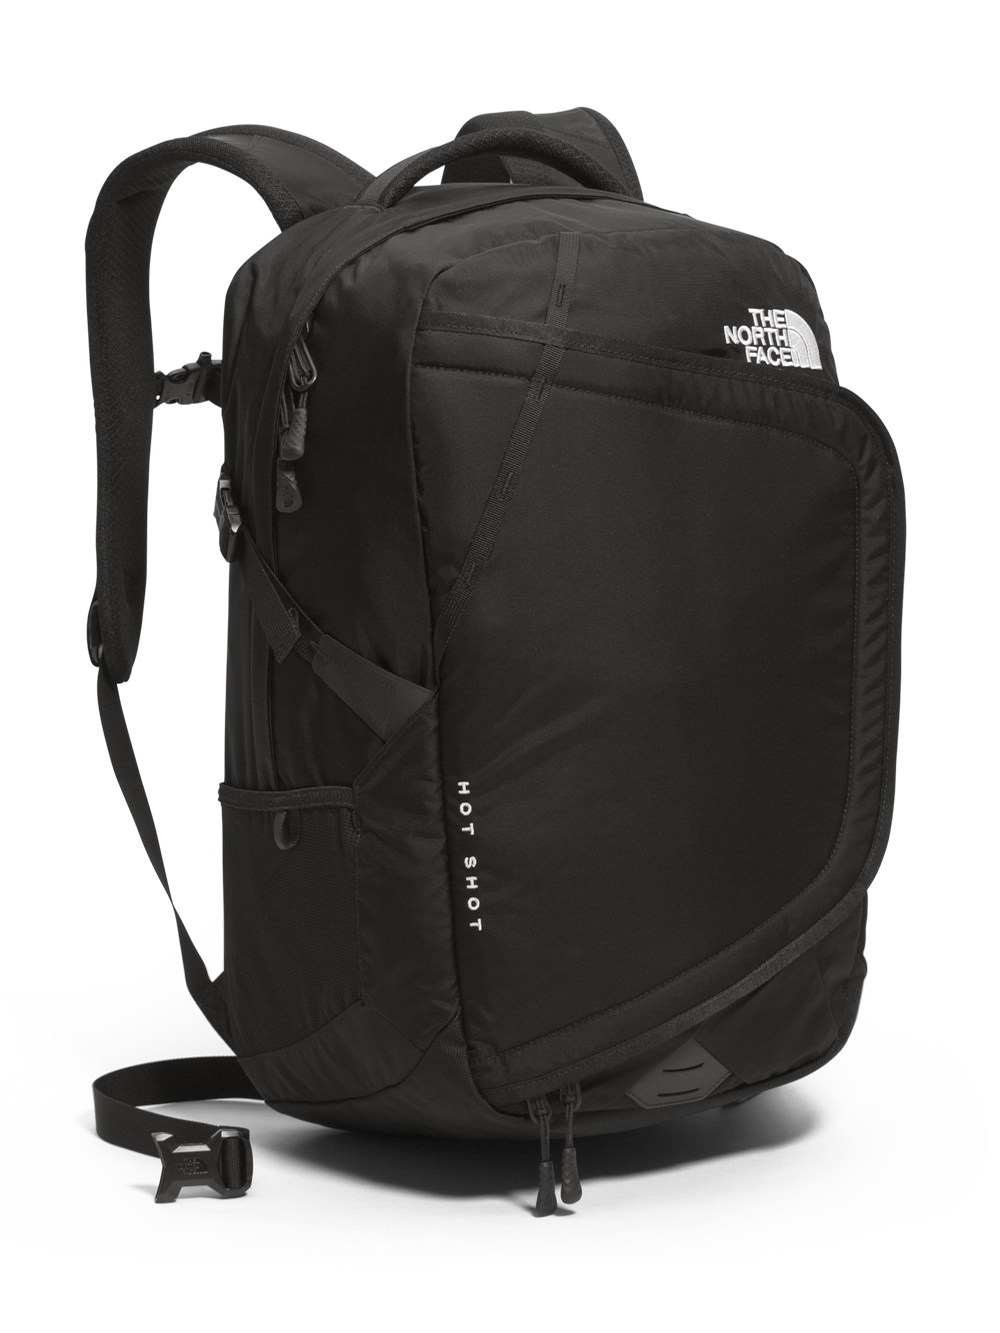 The North Face Hot Shot Backpack - black, one size